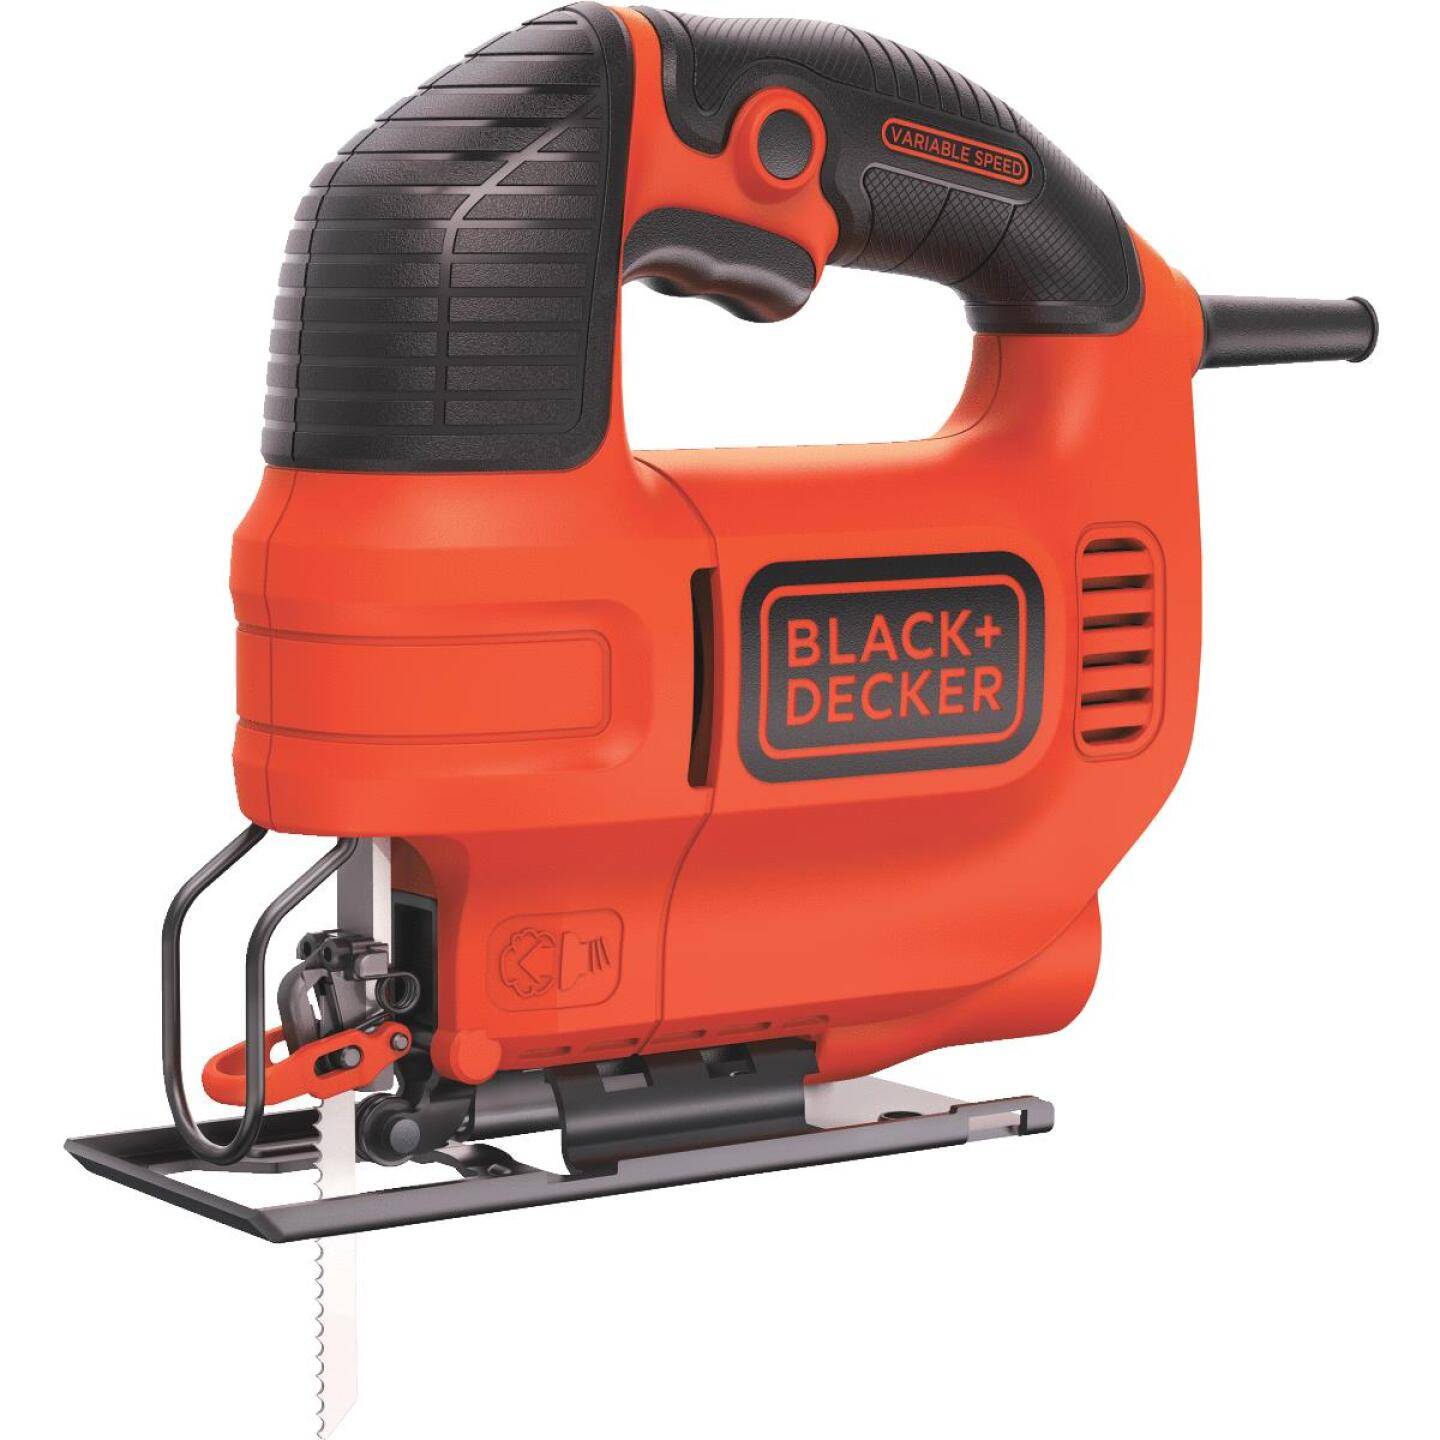 Black & Decker 4.5A 0 to 3000 SPM Jig Saw Image 5